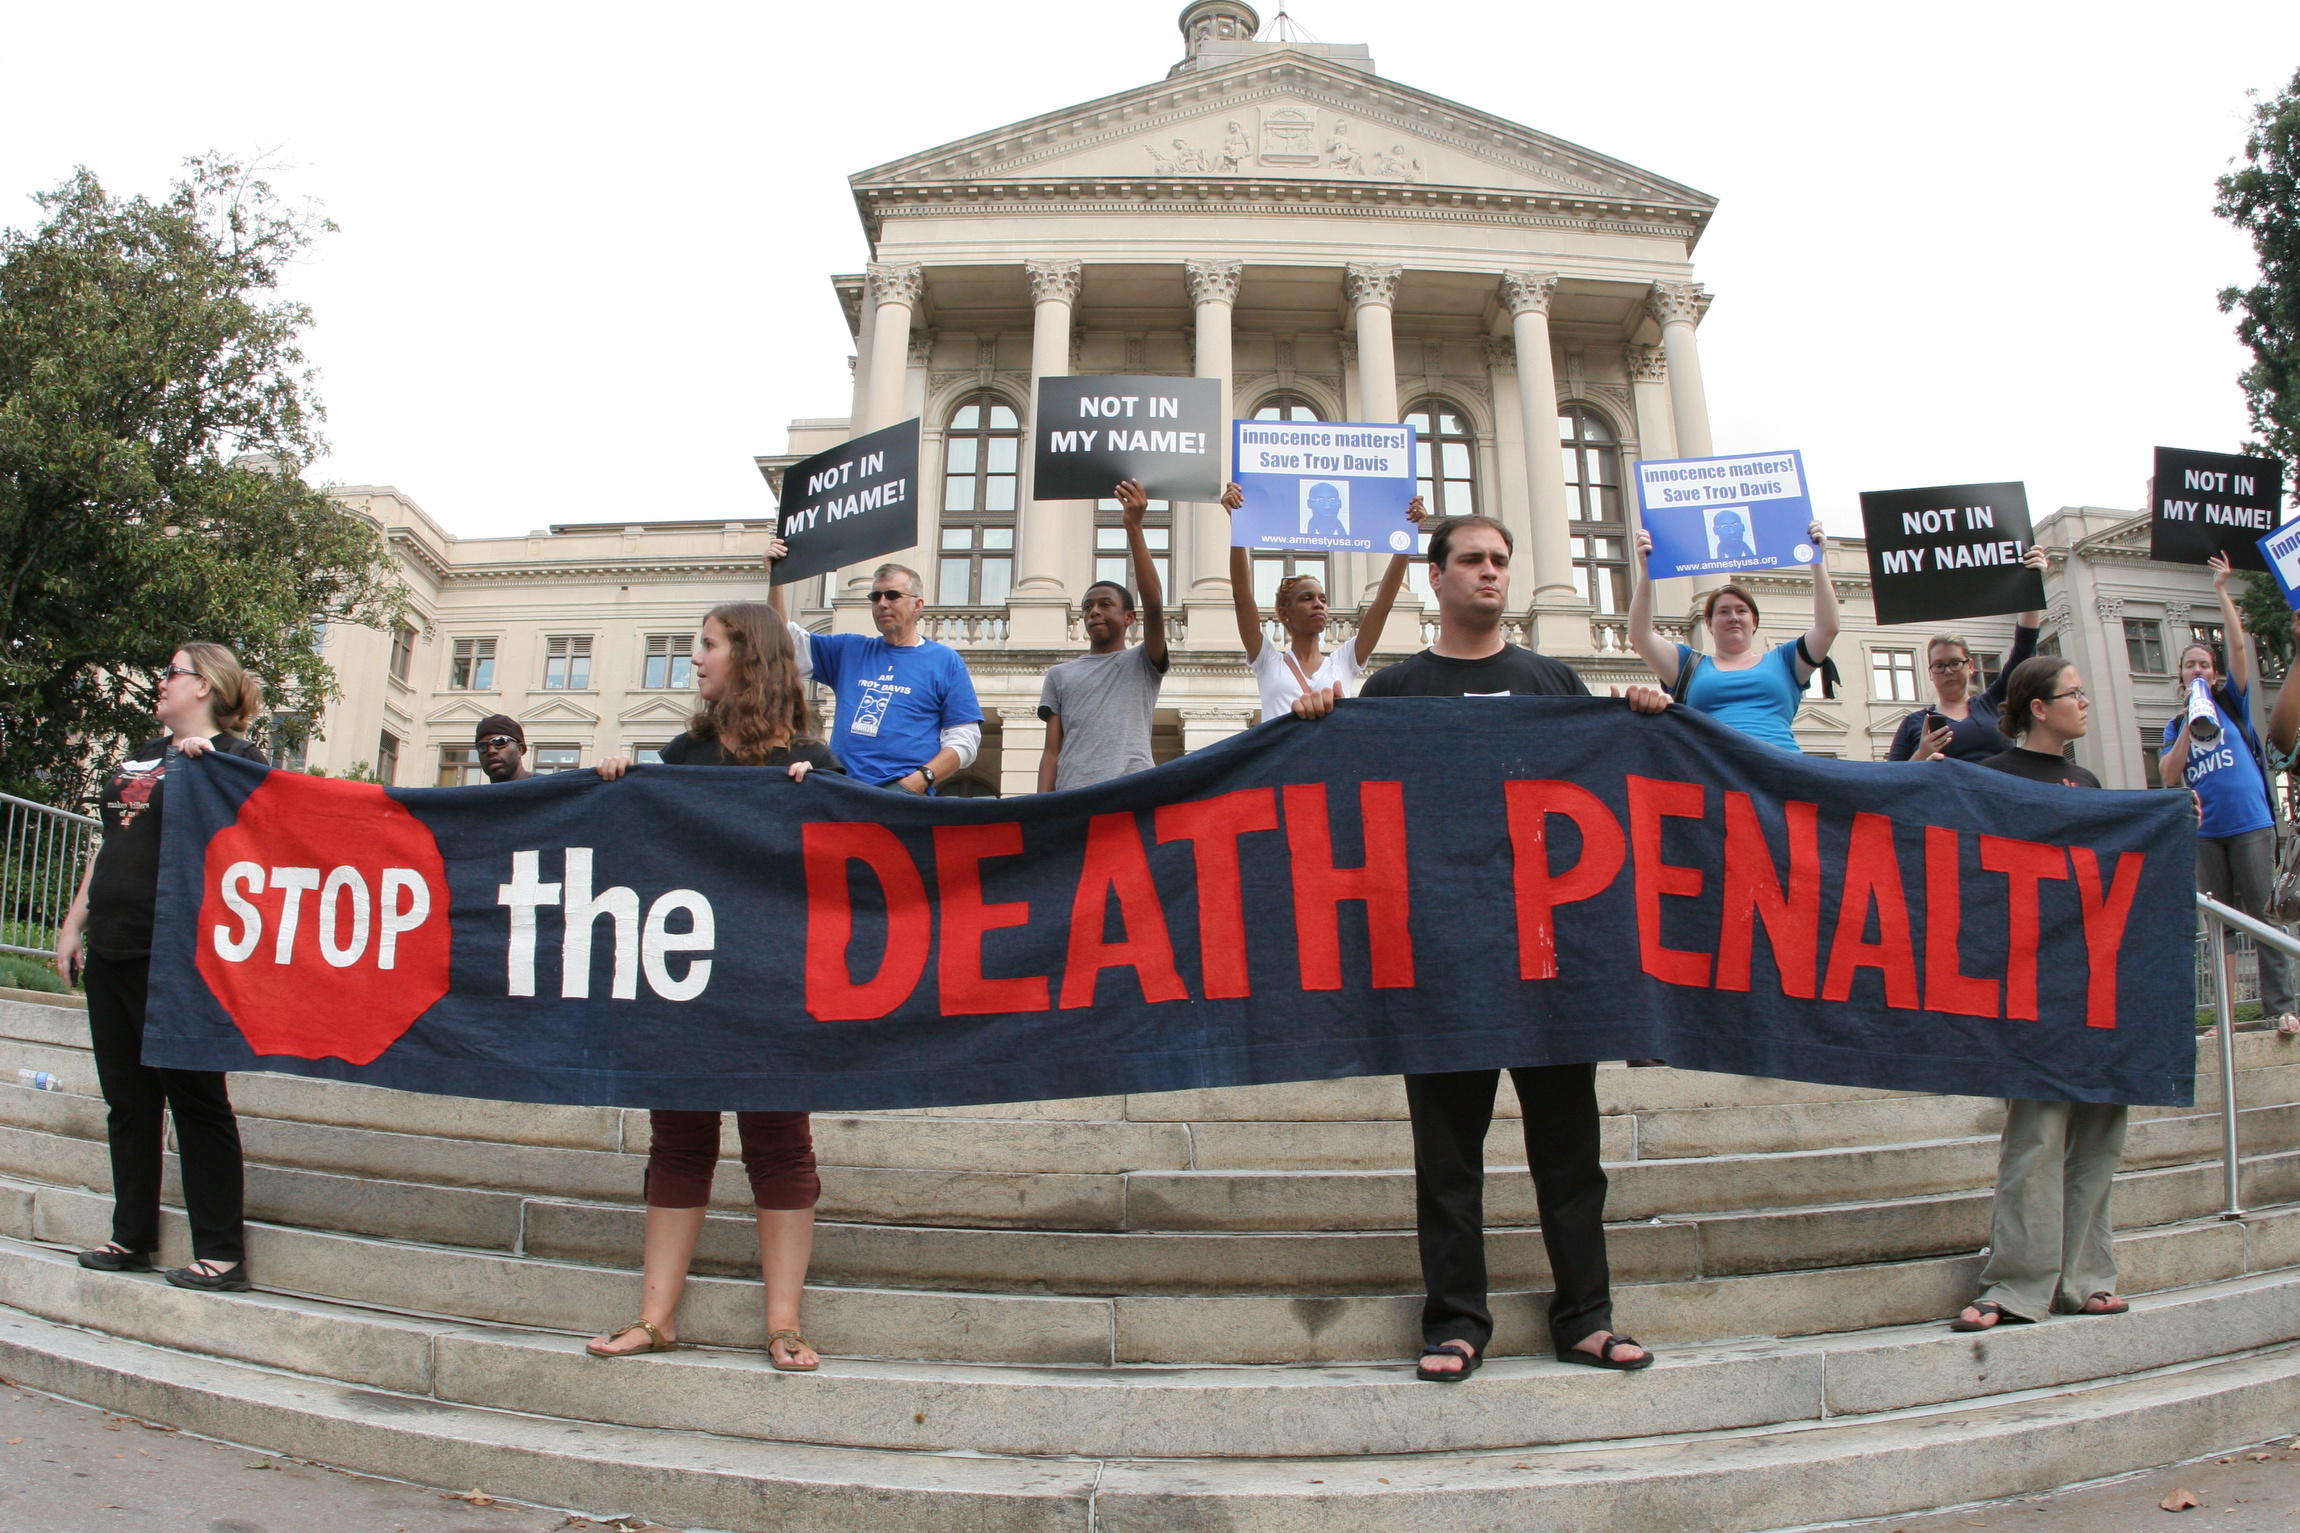 the benefits of abolishing the death penalty in america A year-end analysis from the death penalty information center finds that the use of the death penalty fell to historic lows across the united states with 20 inmates executed in 2016 that is the.